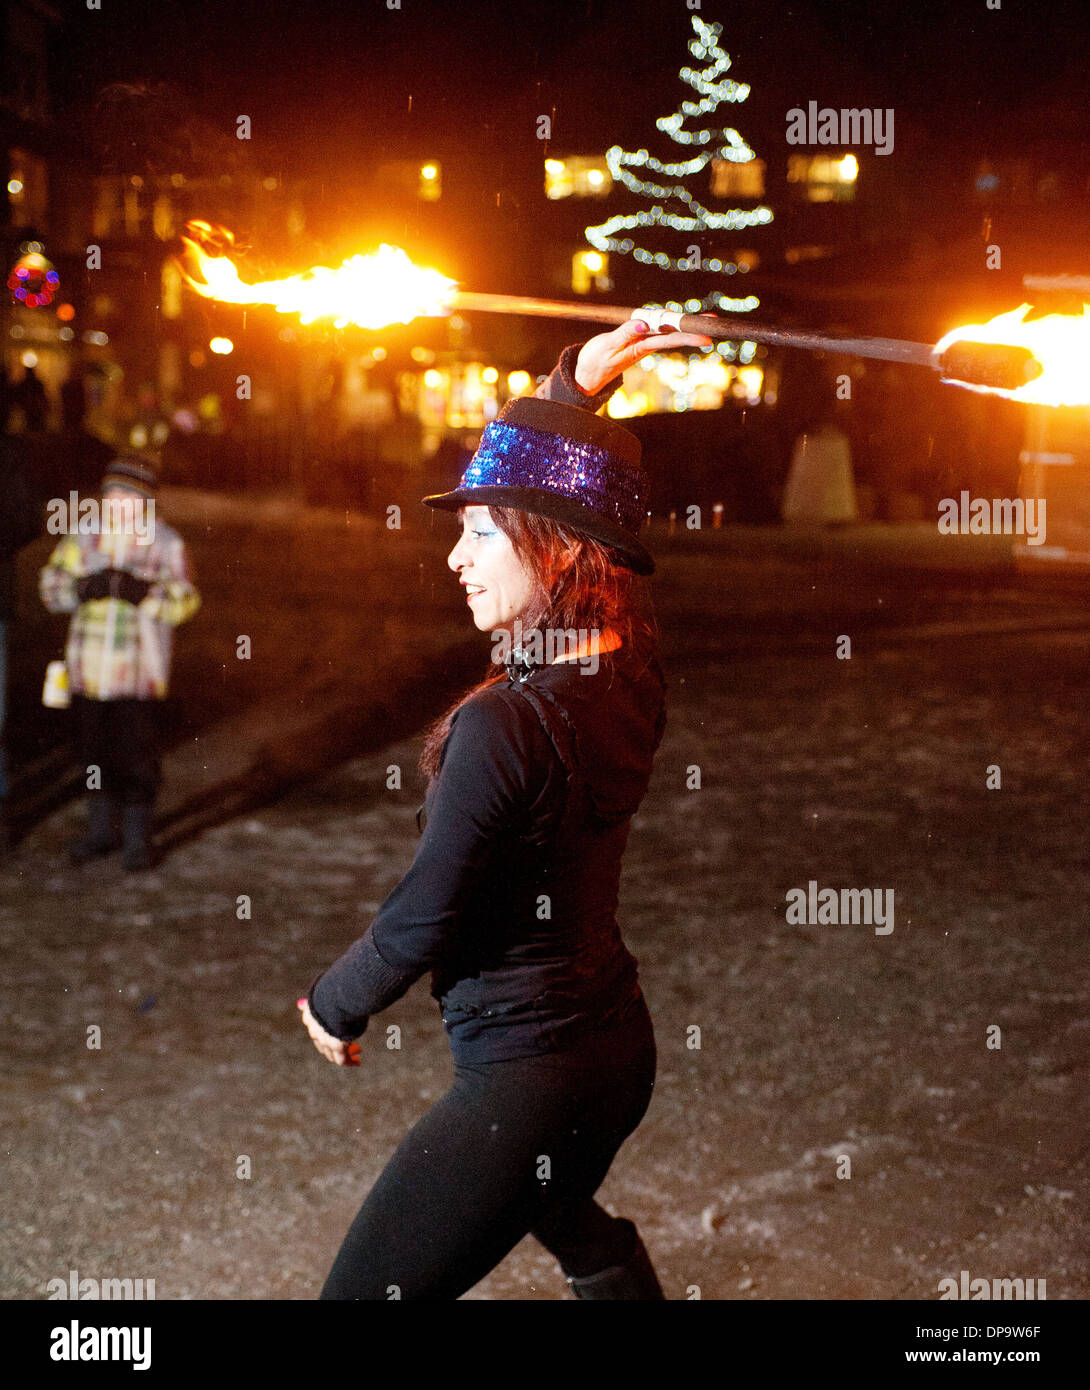 A fire spinner performs in Whistler's Olympic Plaza as part of the Family Apres Ski events.  Whistler BC, Canada. - Stock Image